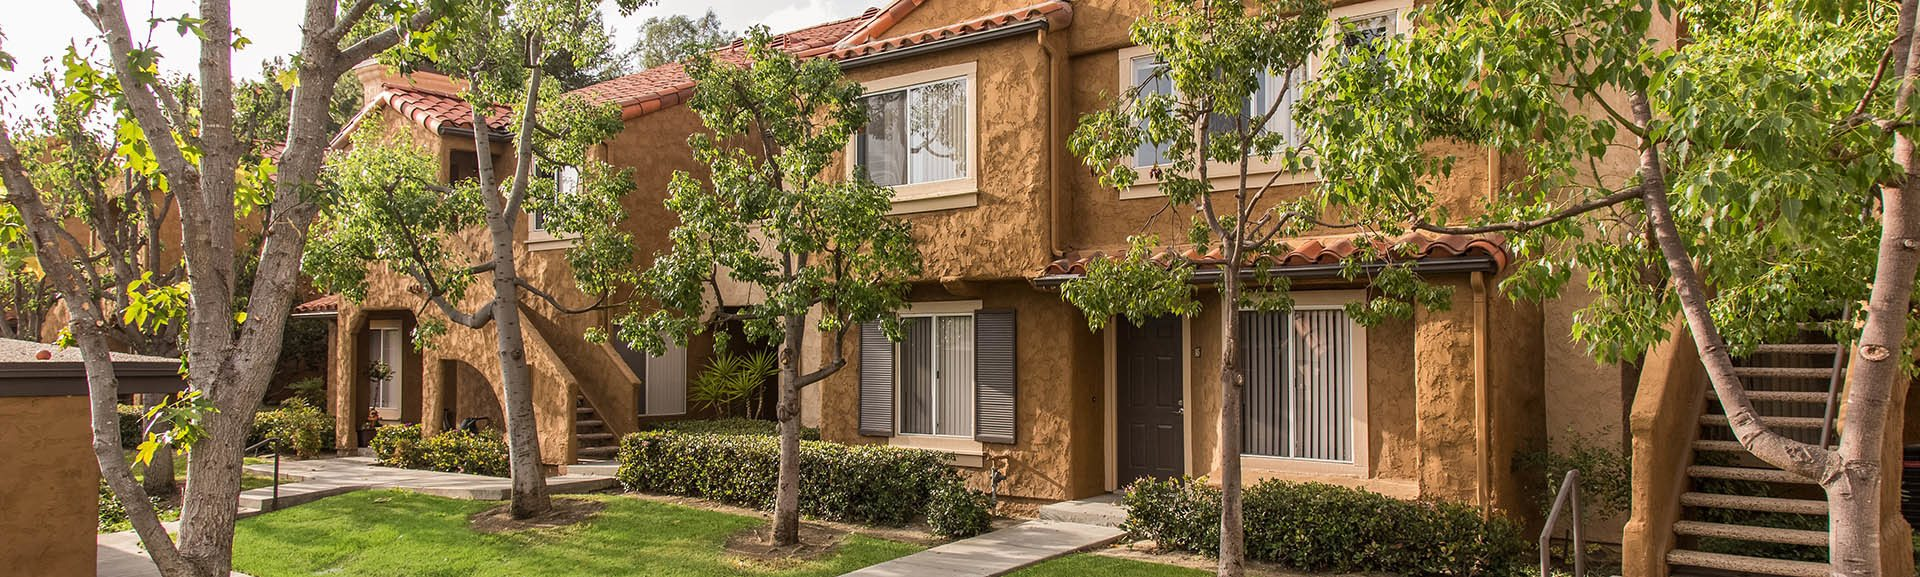 Read reviews of Hidden Hills Condominium Rentals on our website